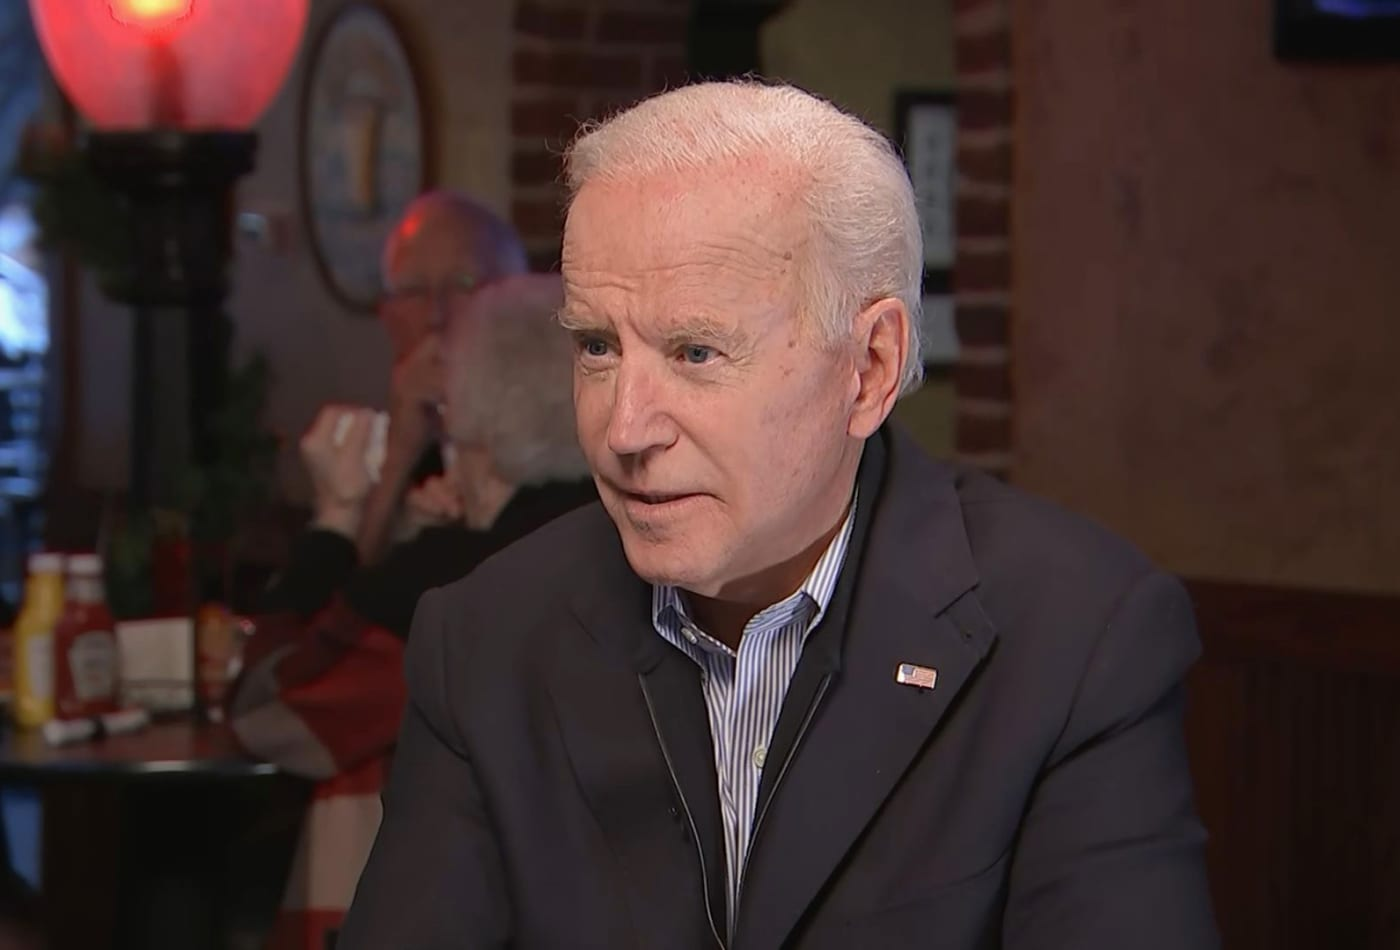 Joe Biden says Trump is 'ripping the soul out of this country' and 'we're likely to inherit a recession'